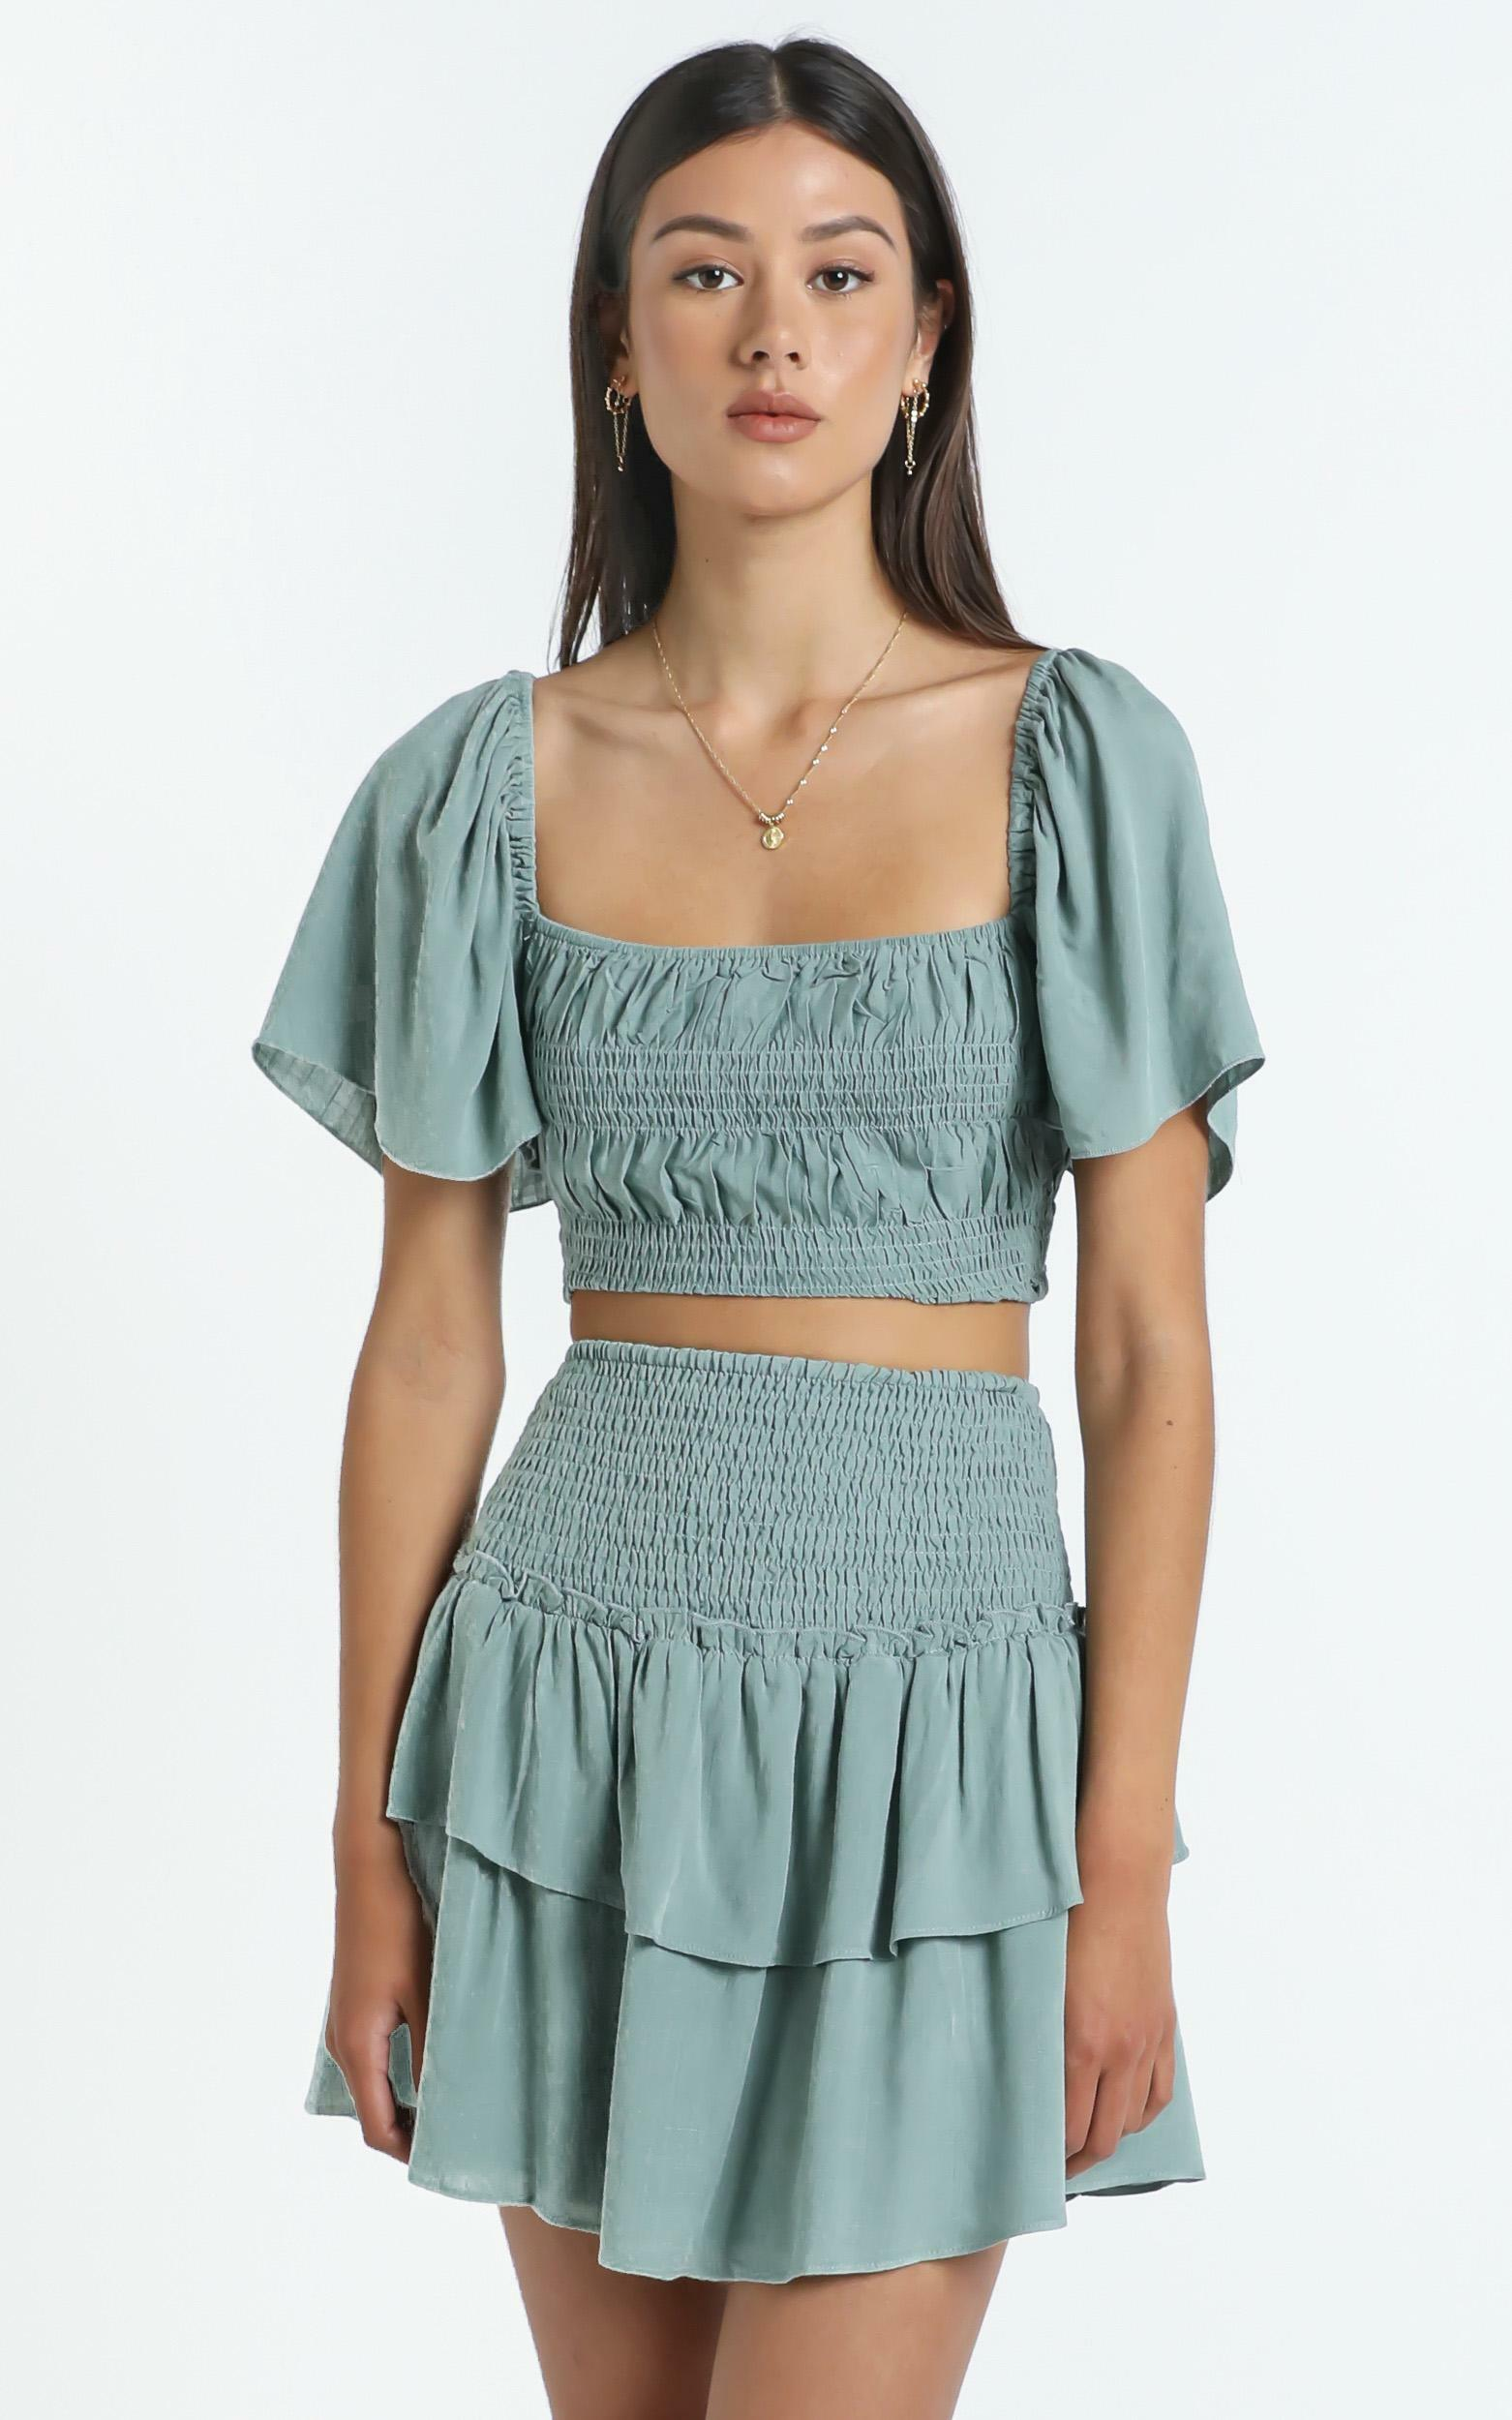 Kloe Skirt in Sage - 14 (XL), Sage, hi-res image number null